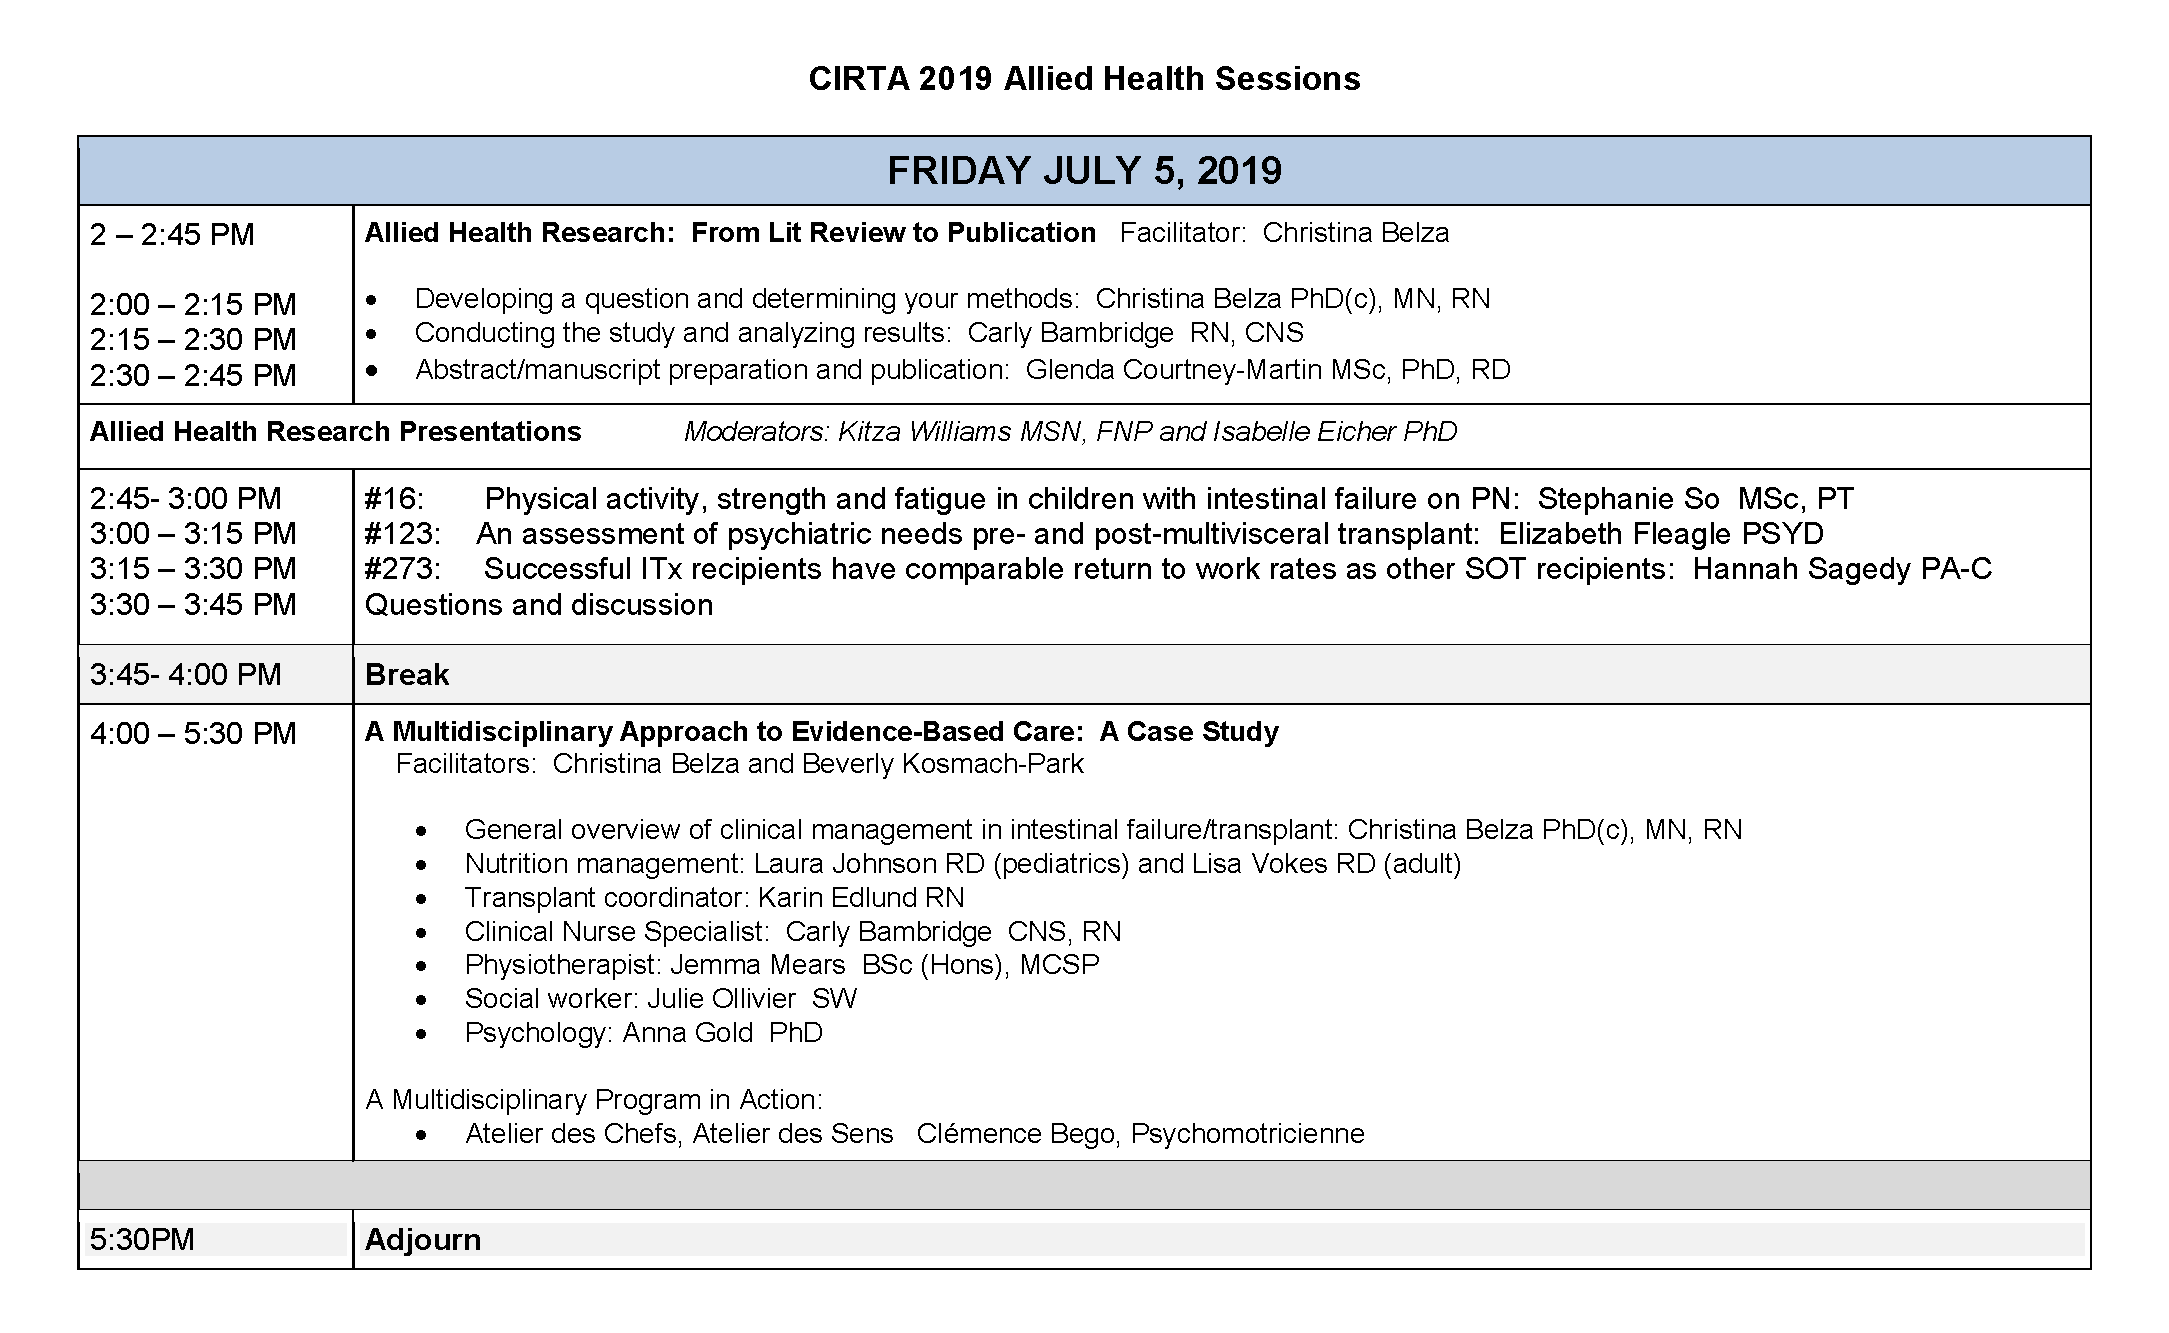 Allied Health_CIRTA 2019_FINAL 190603b_Page_2b